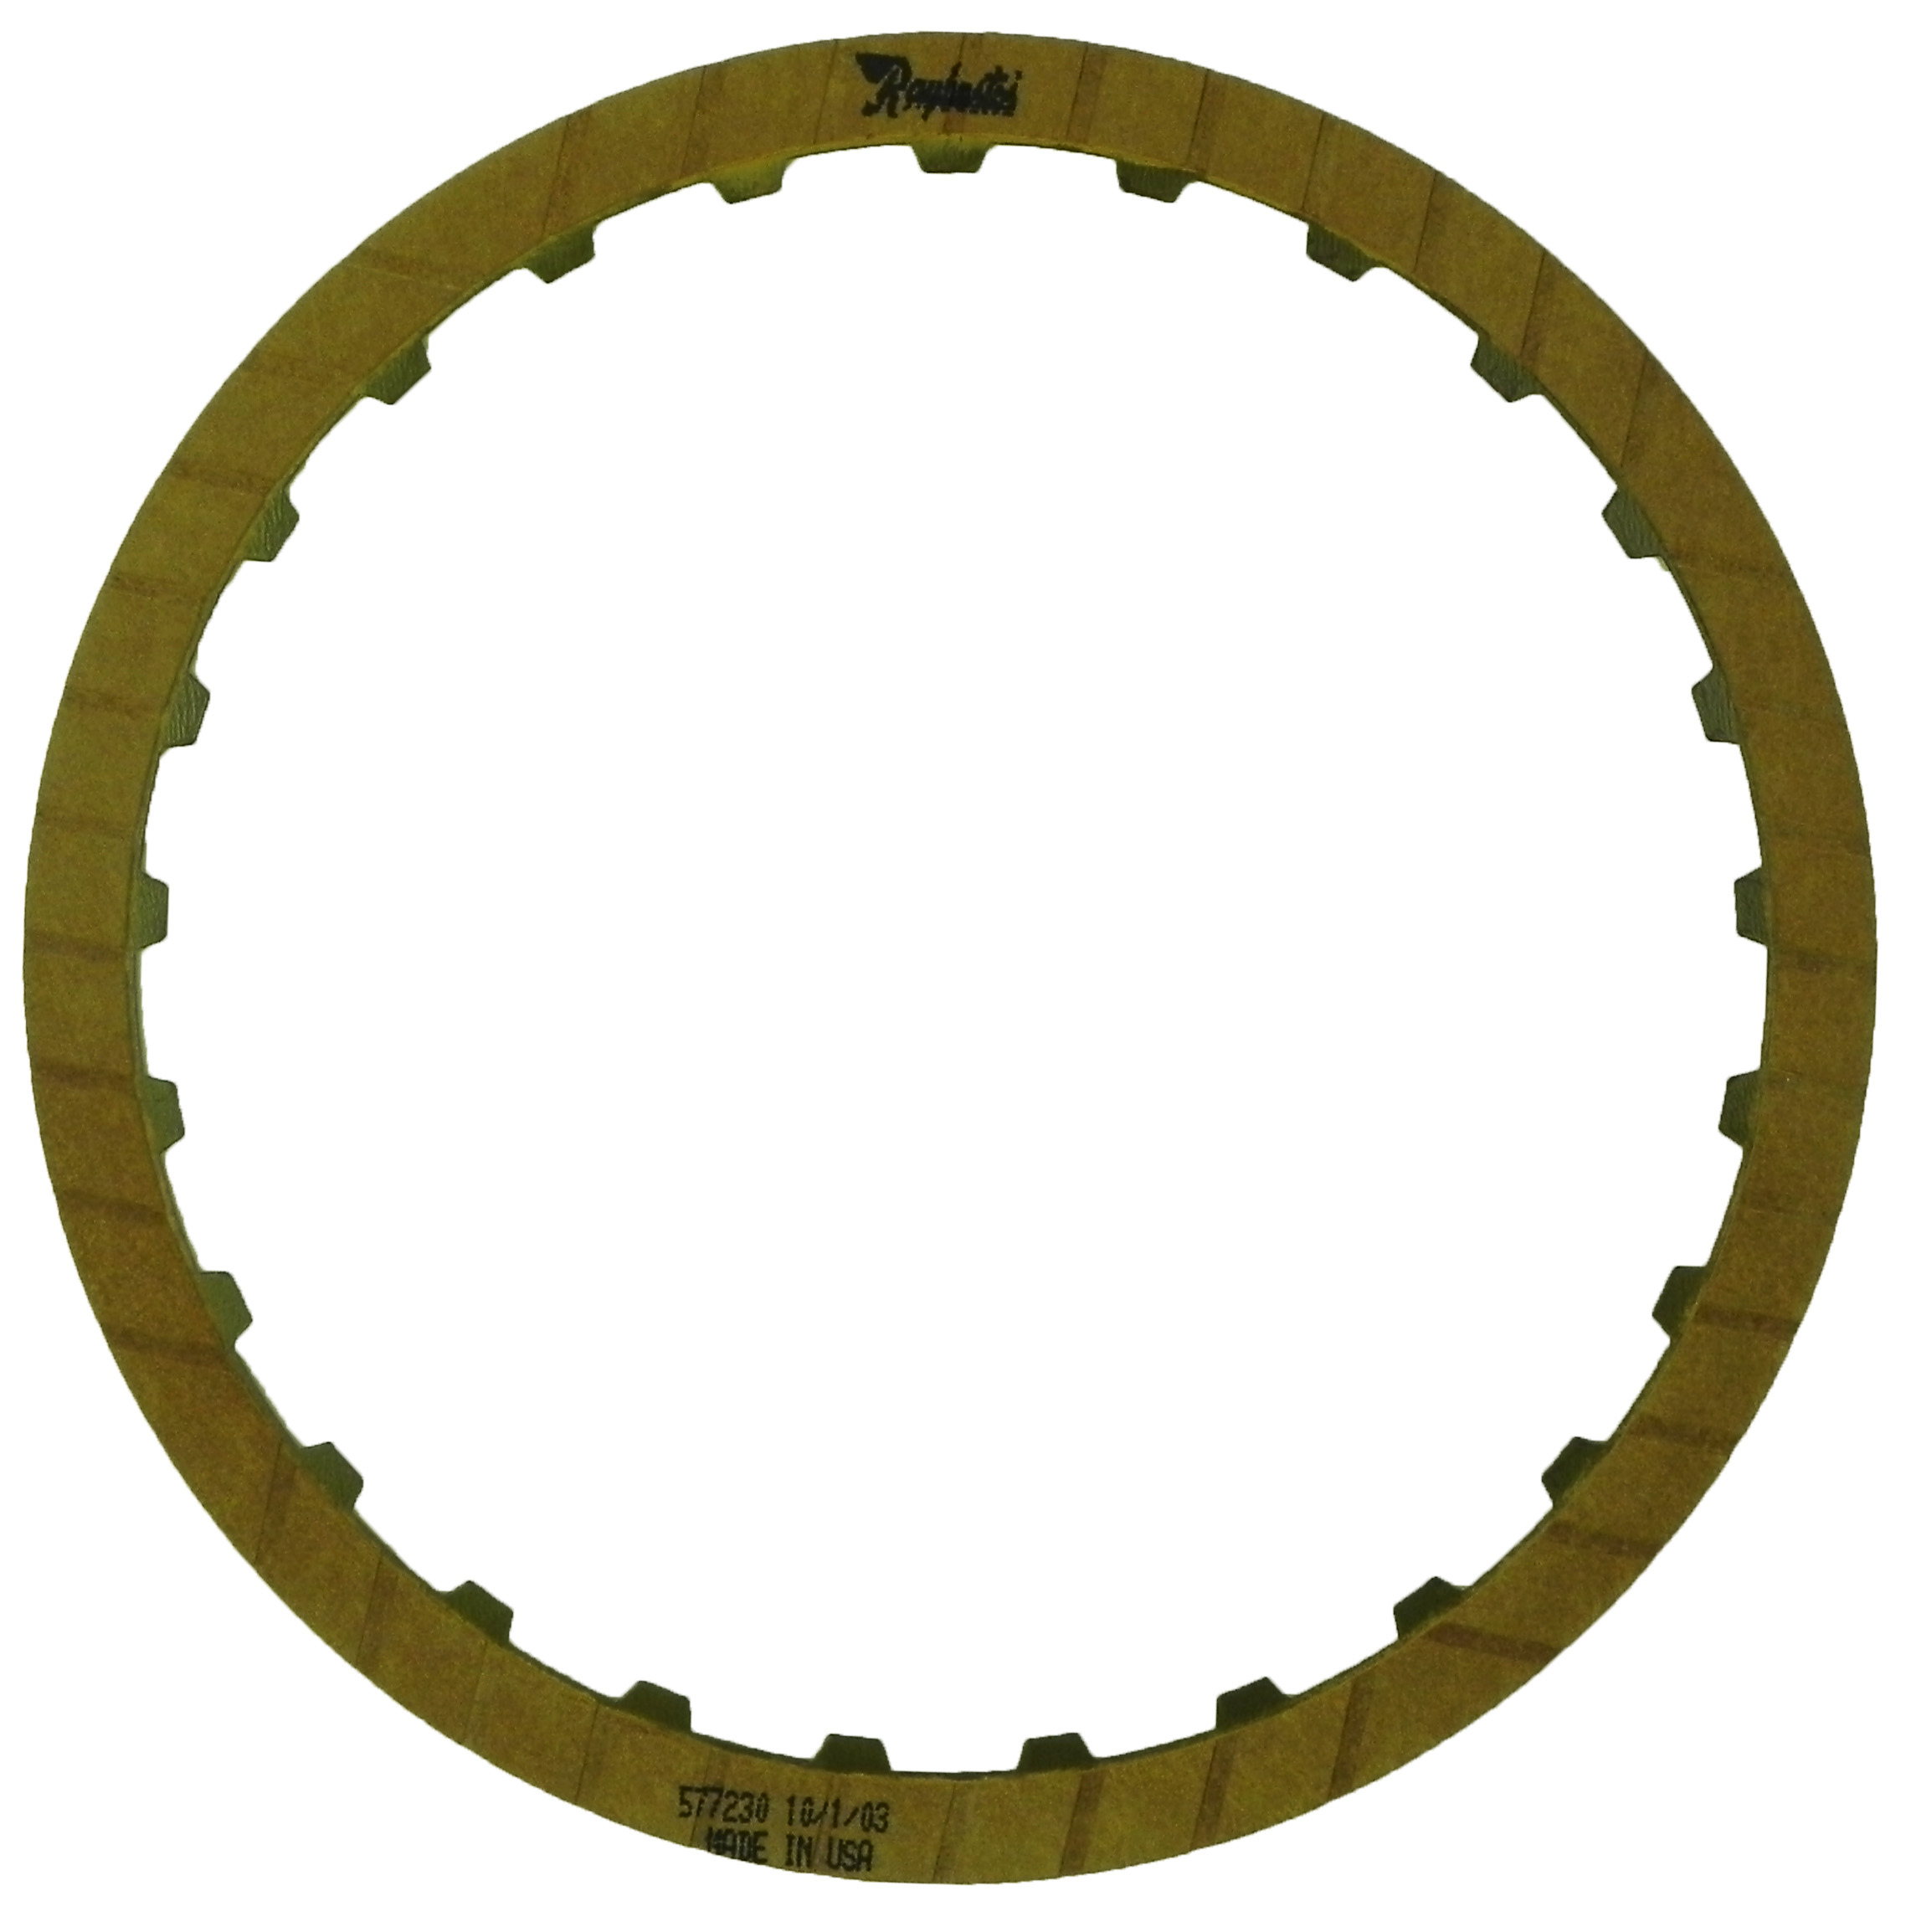 R577230 | 1982-ON Friction Clutch Plate GEN 2, Blue Plate Special Low, Reverse, GEN 2, Race Product (High Static)